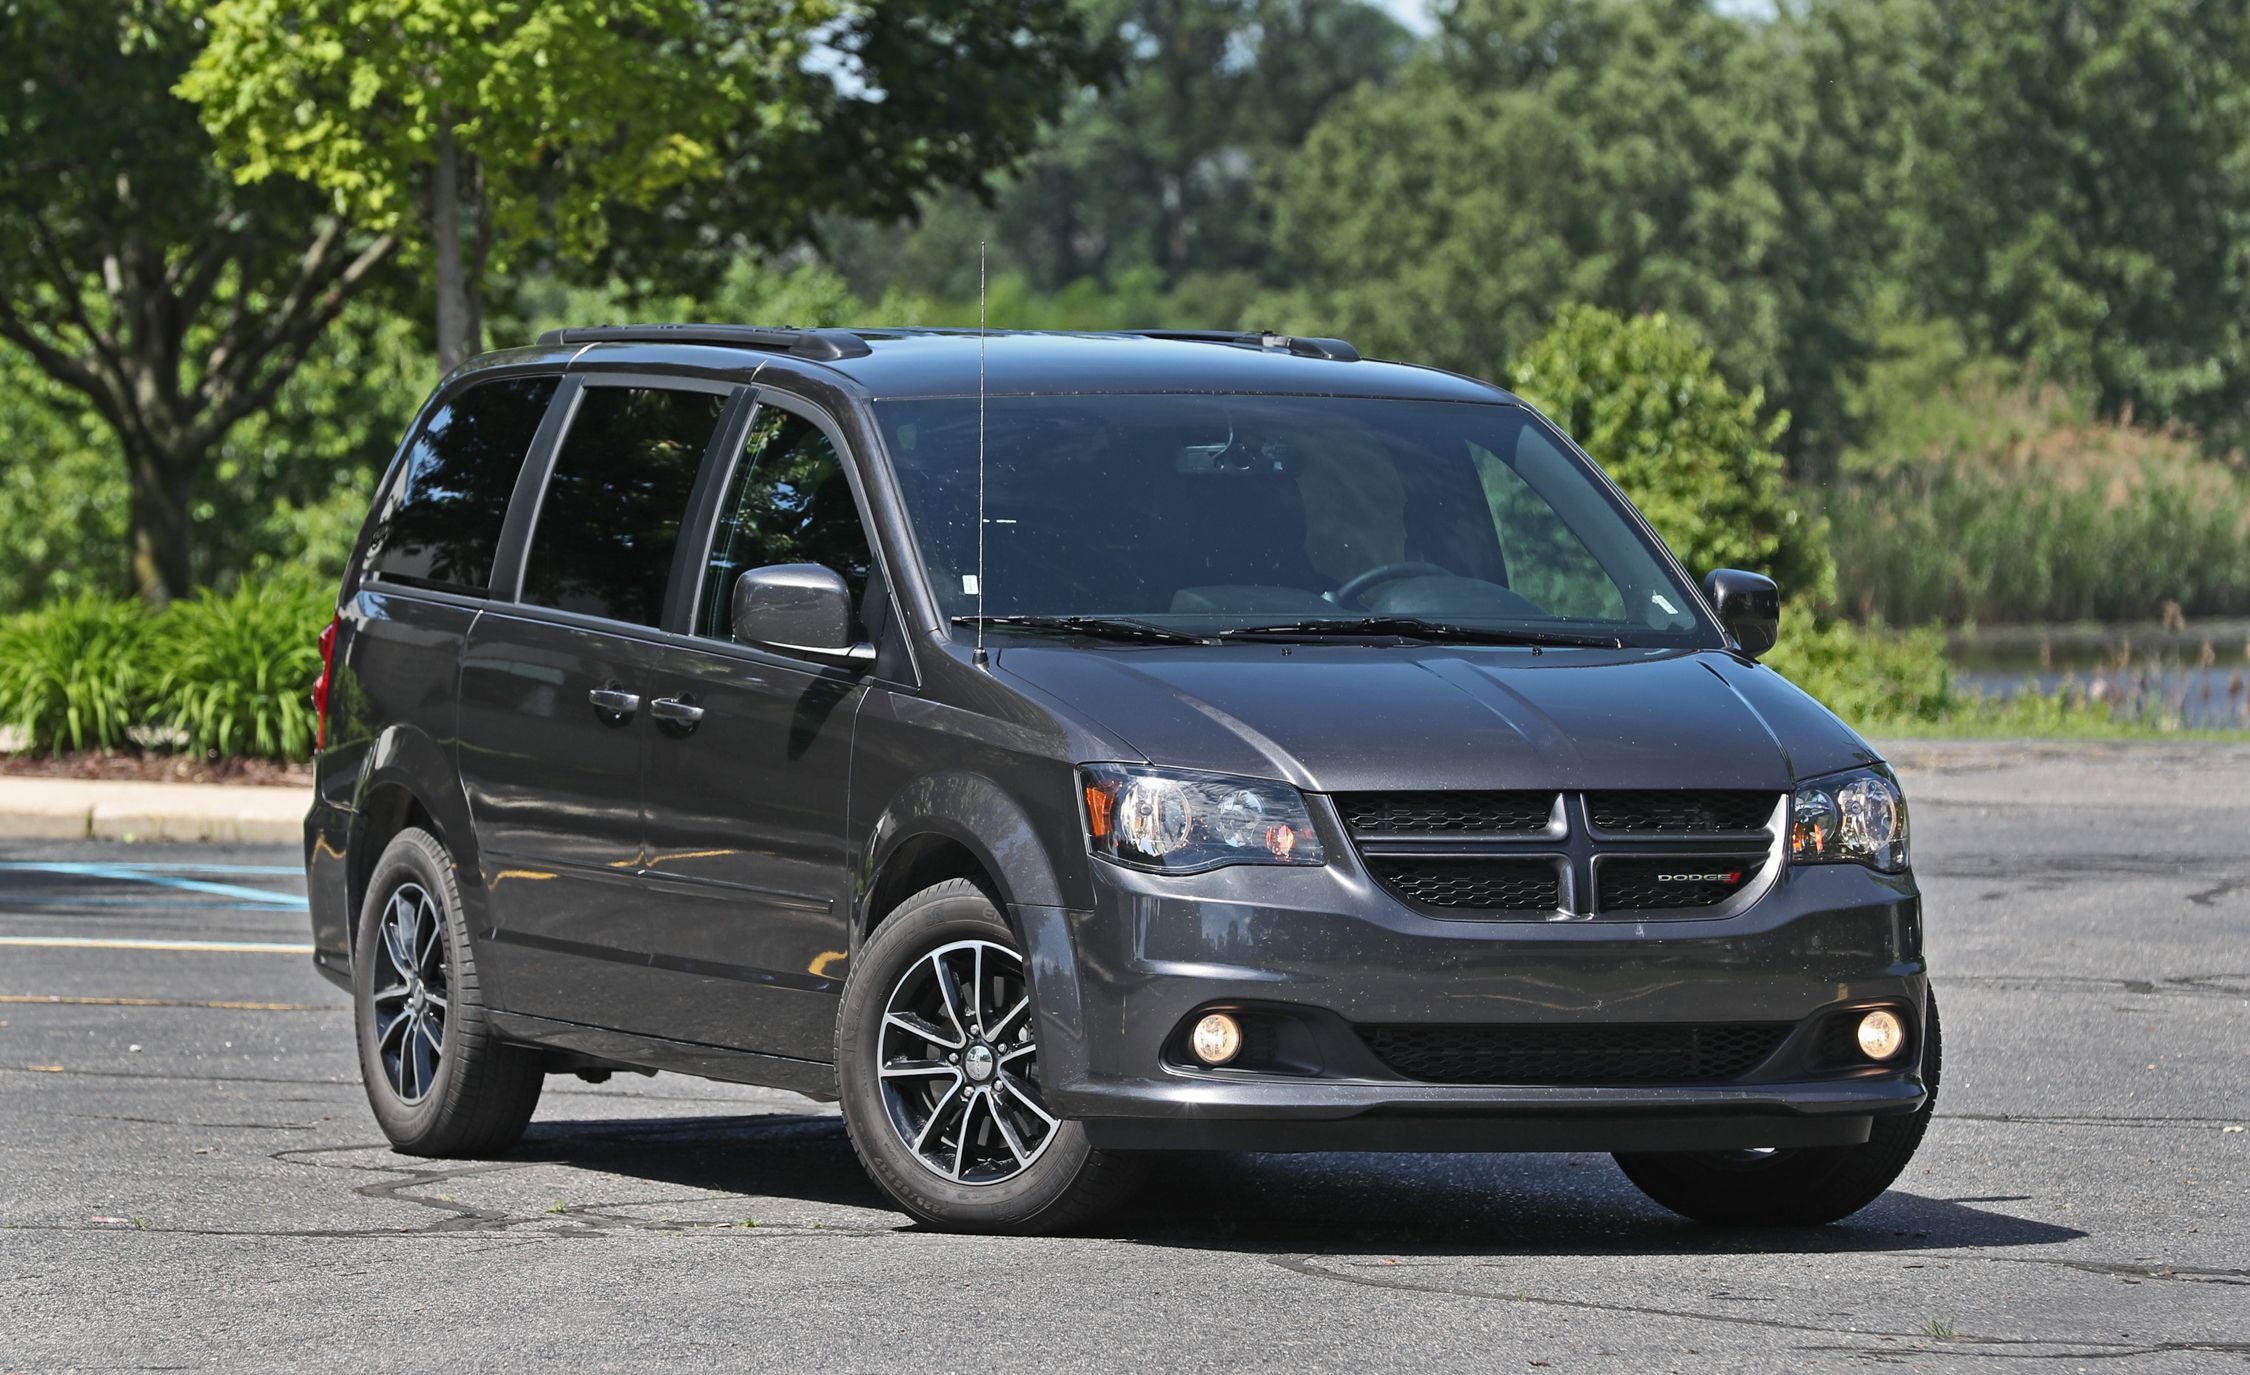 2018-dodge-grand-caravan-engine-and-transmission-review-car-and-driver-photo-691530-s-original